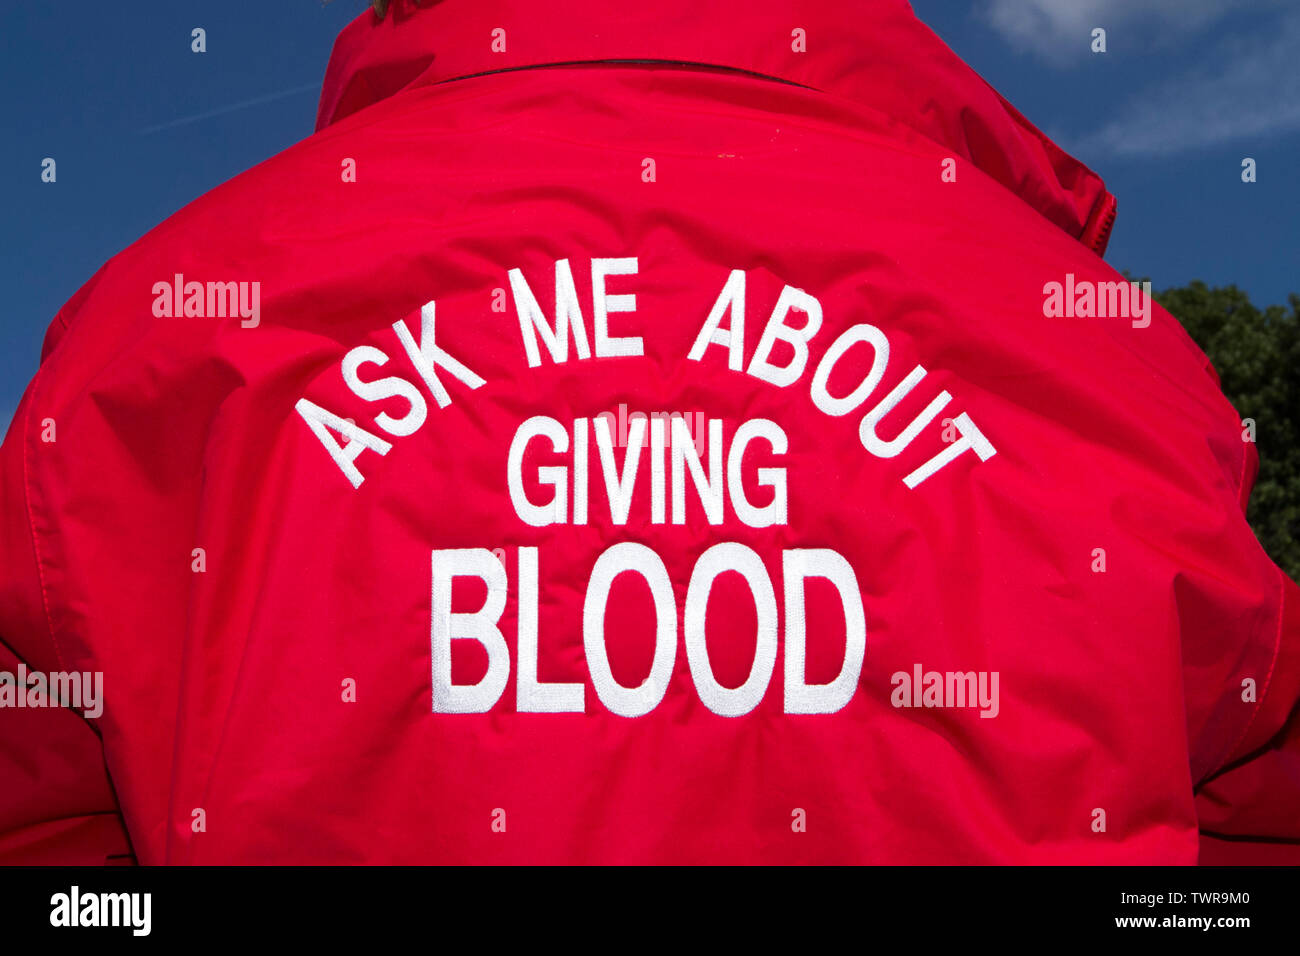 NHS blood donor donation saves lives - Stock Image